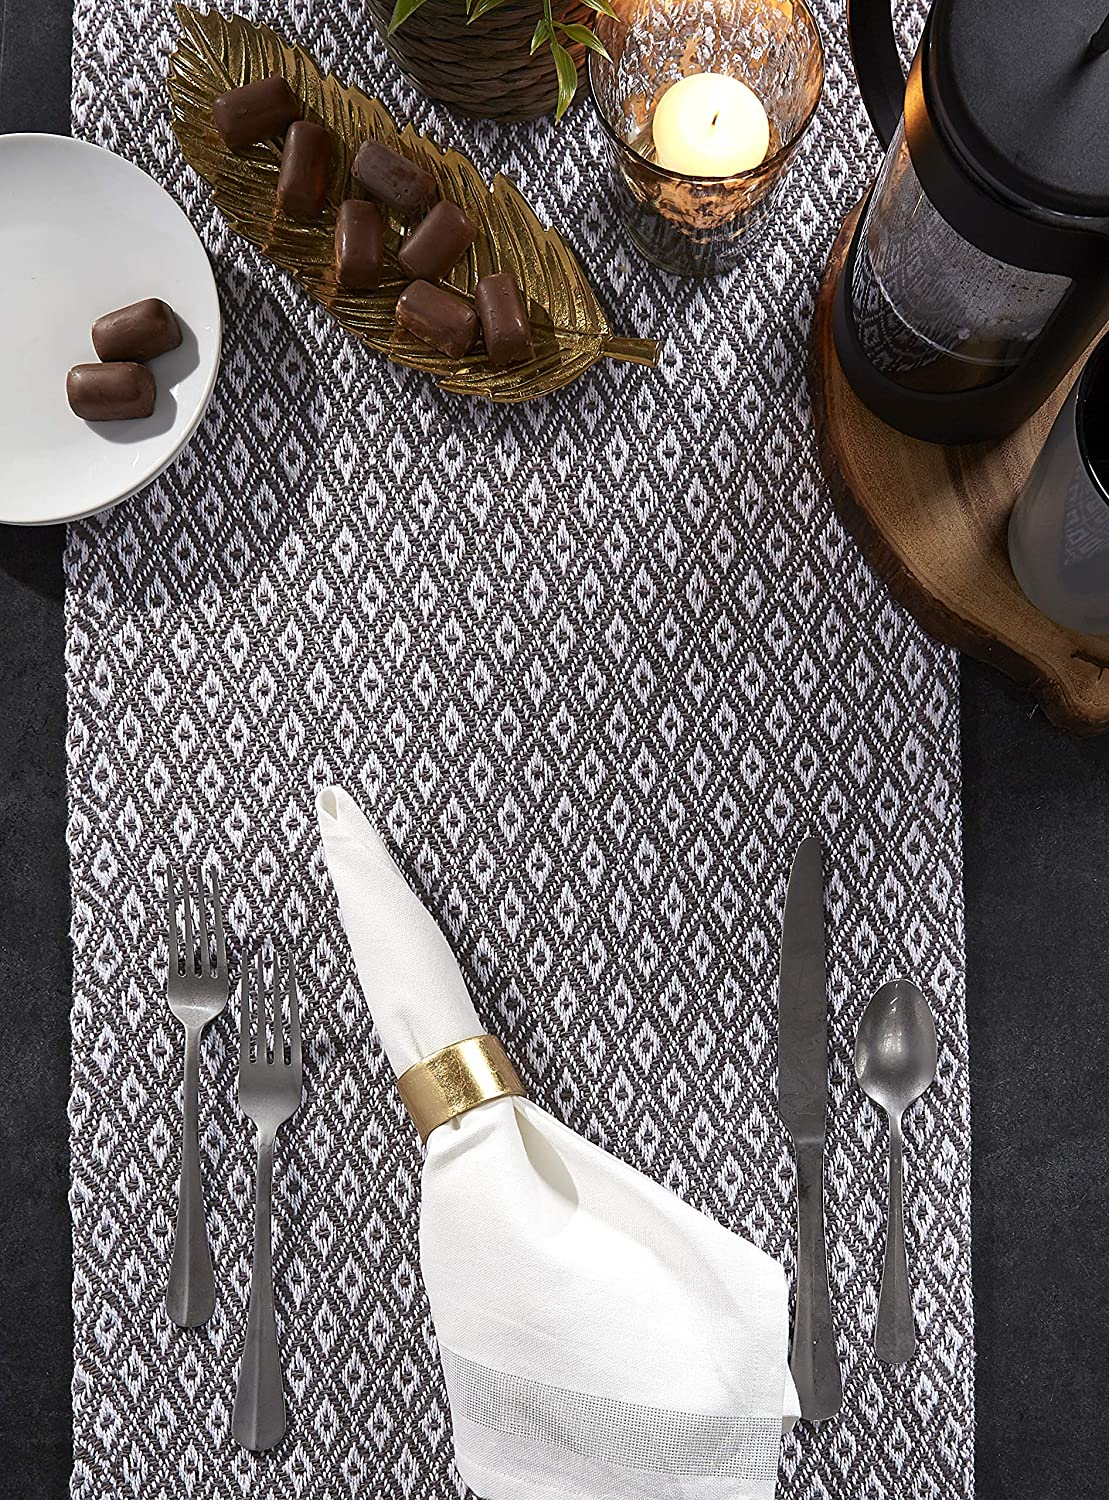 Stone Taupe CAMZ38883 Fall Holidays DII Braided Cotton Table Runner Perfect for Spring Parties and Everyday Use 15x72